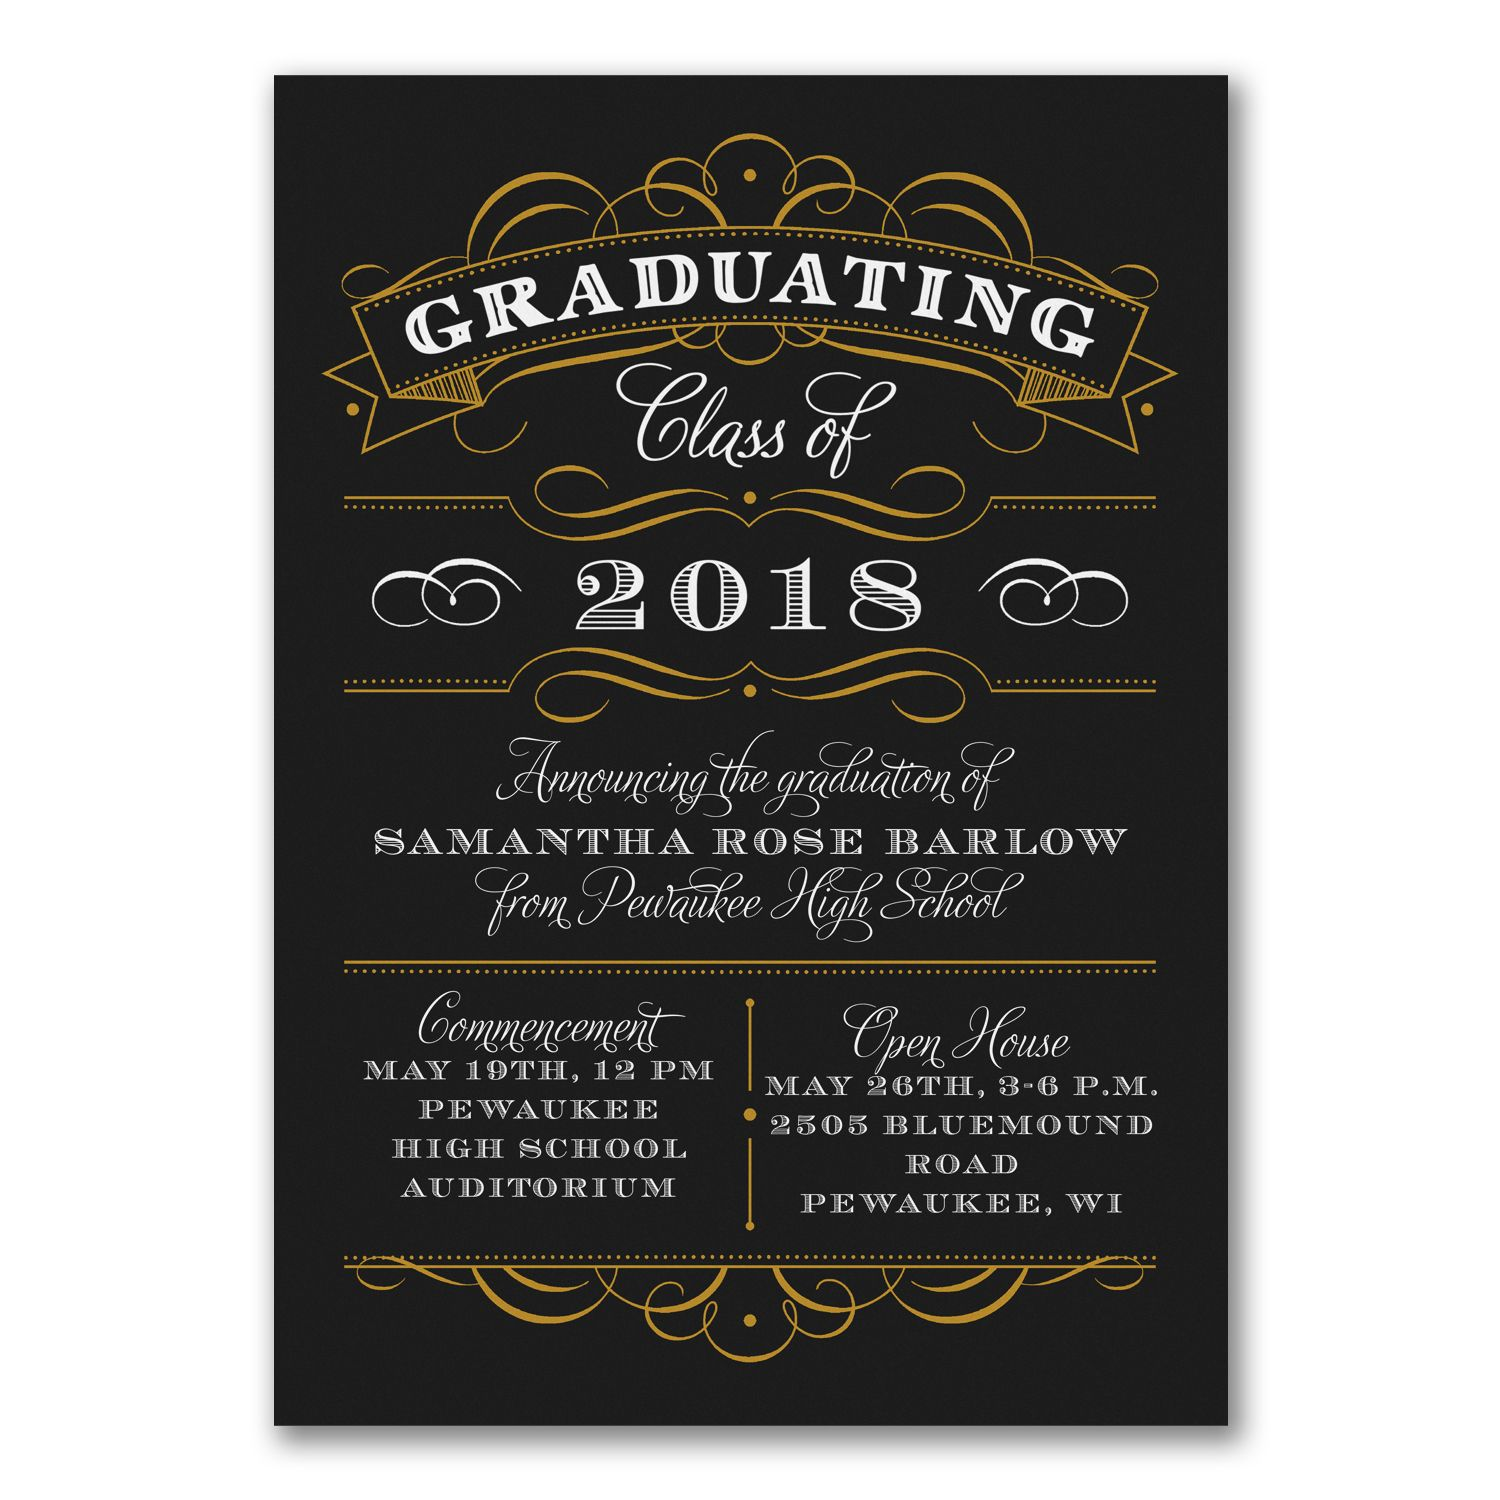 Classy chalkboard custom printed graduation announcement http classy chalkboard custom printed graduation announcement httppartyblockinvitationsoccasions sa filmwisefo